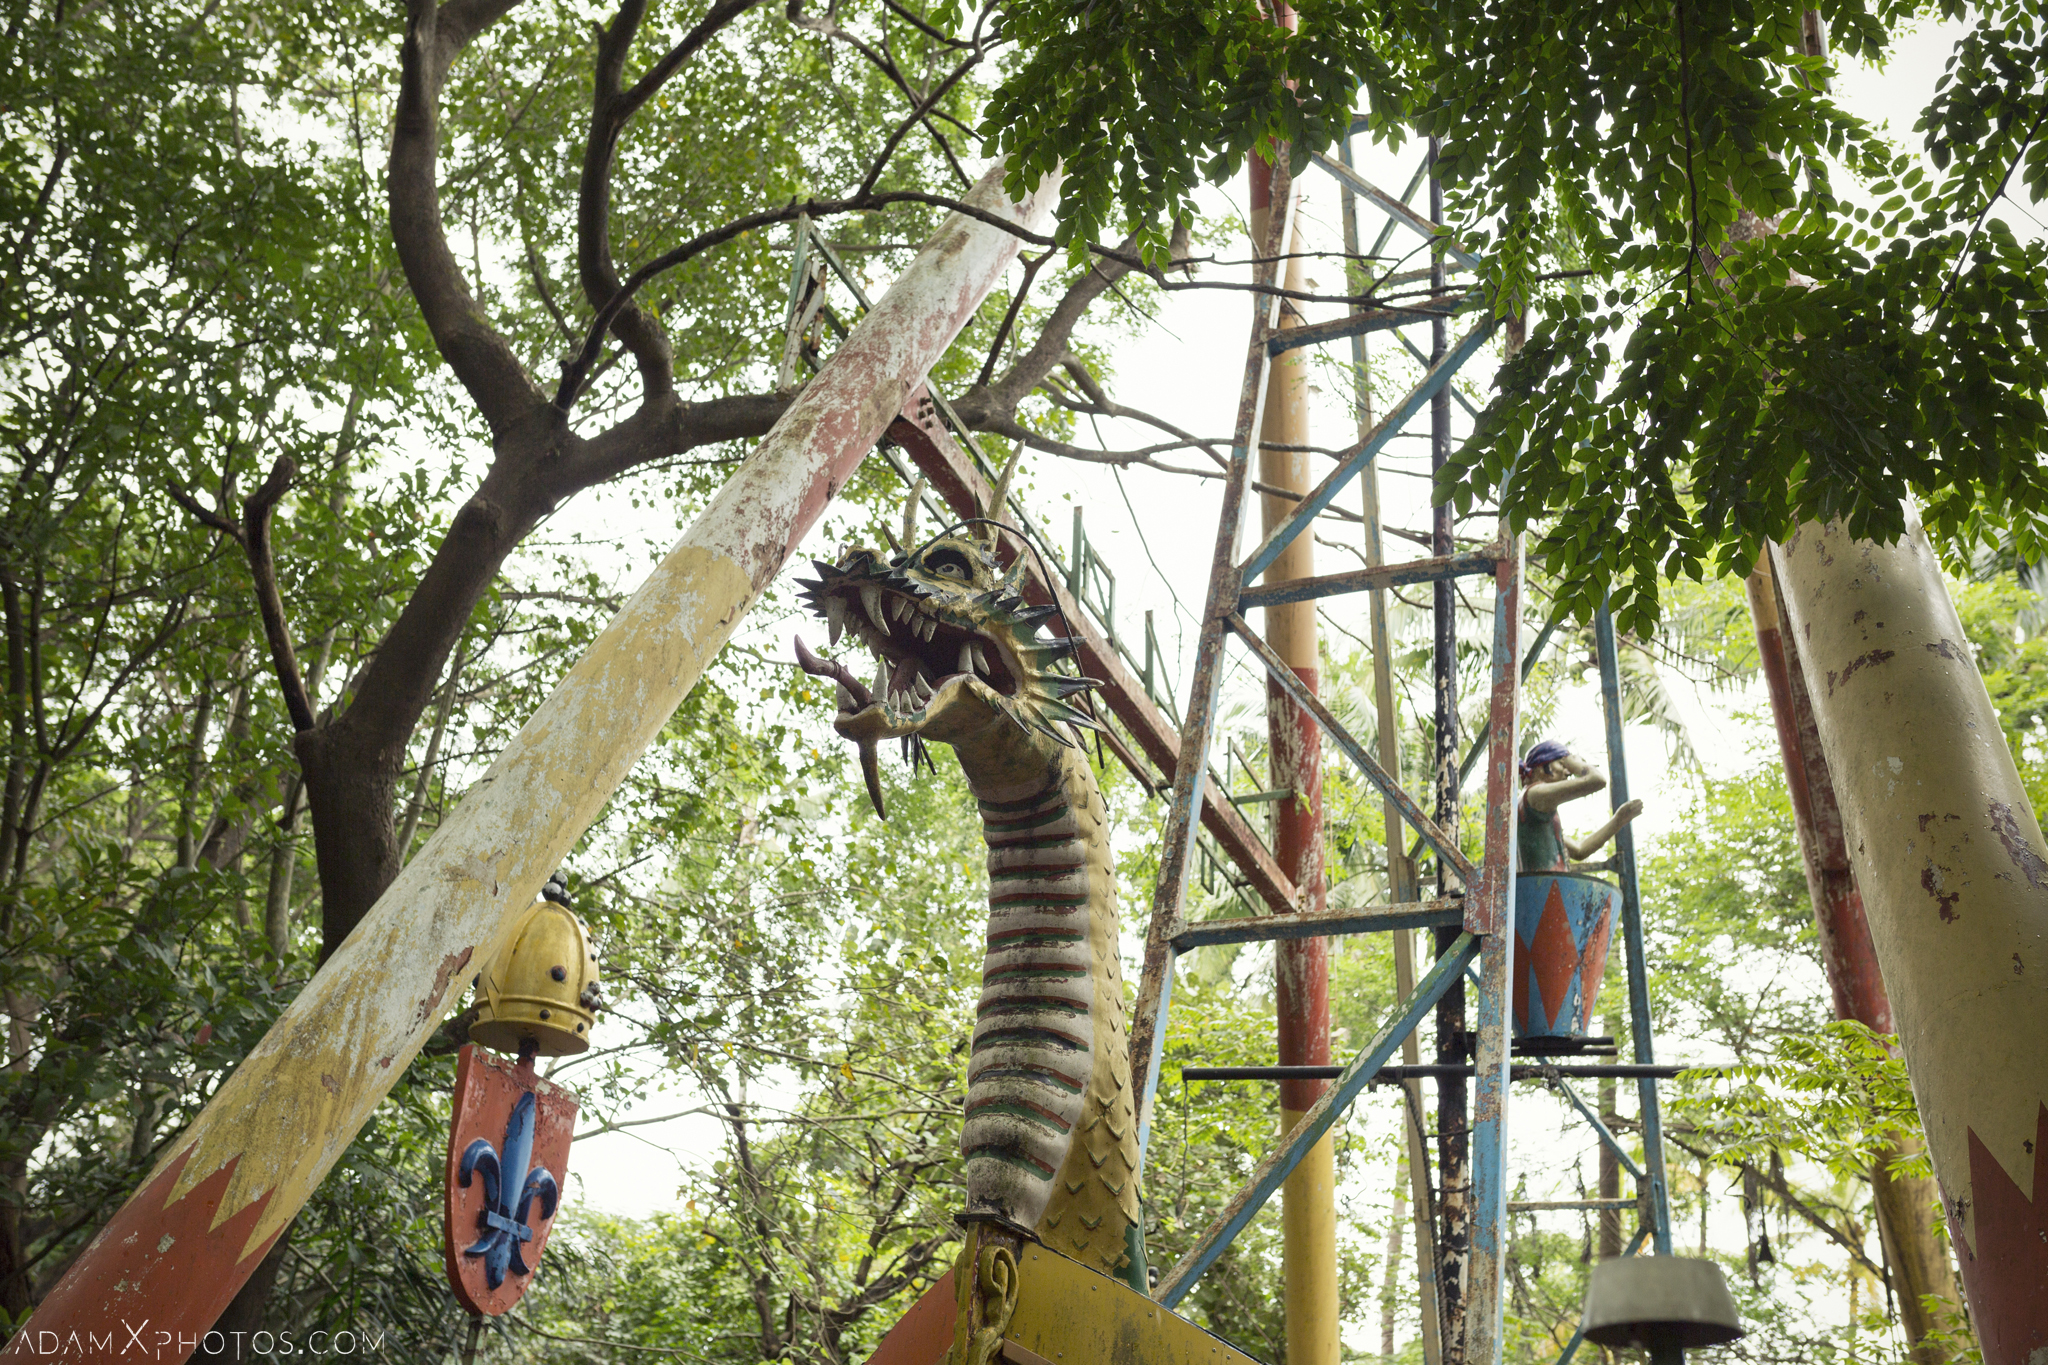 Dragon boat pirate swing ride Happy World Theme Park Amusement Park Fairground Myanmar Burma Yangon Rangoon Urbex Adam X Urban Exploration Access 2016 Abandoned decay lost forgotten derelict location creepy haunting eerie